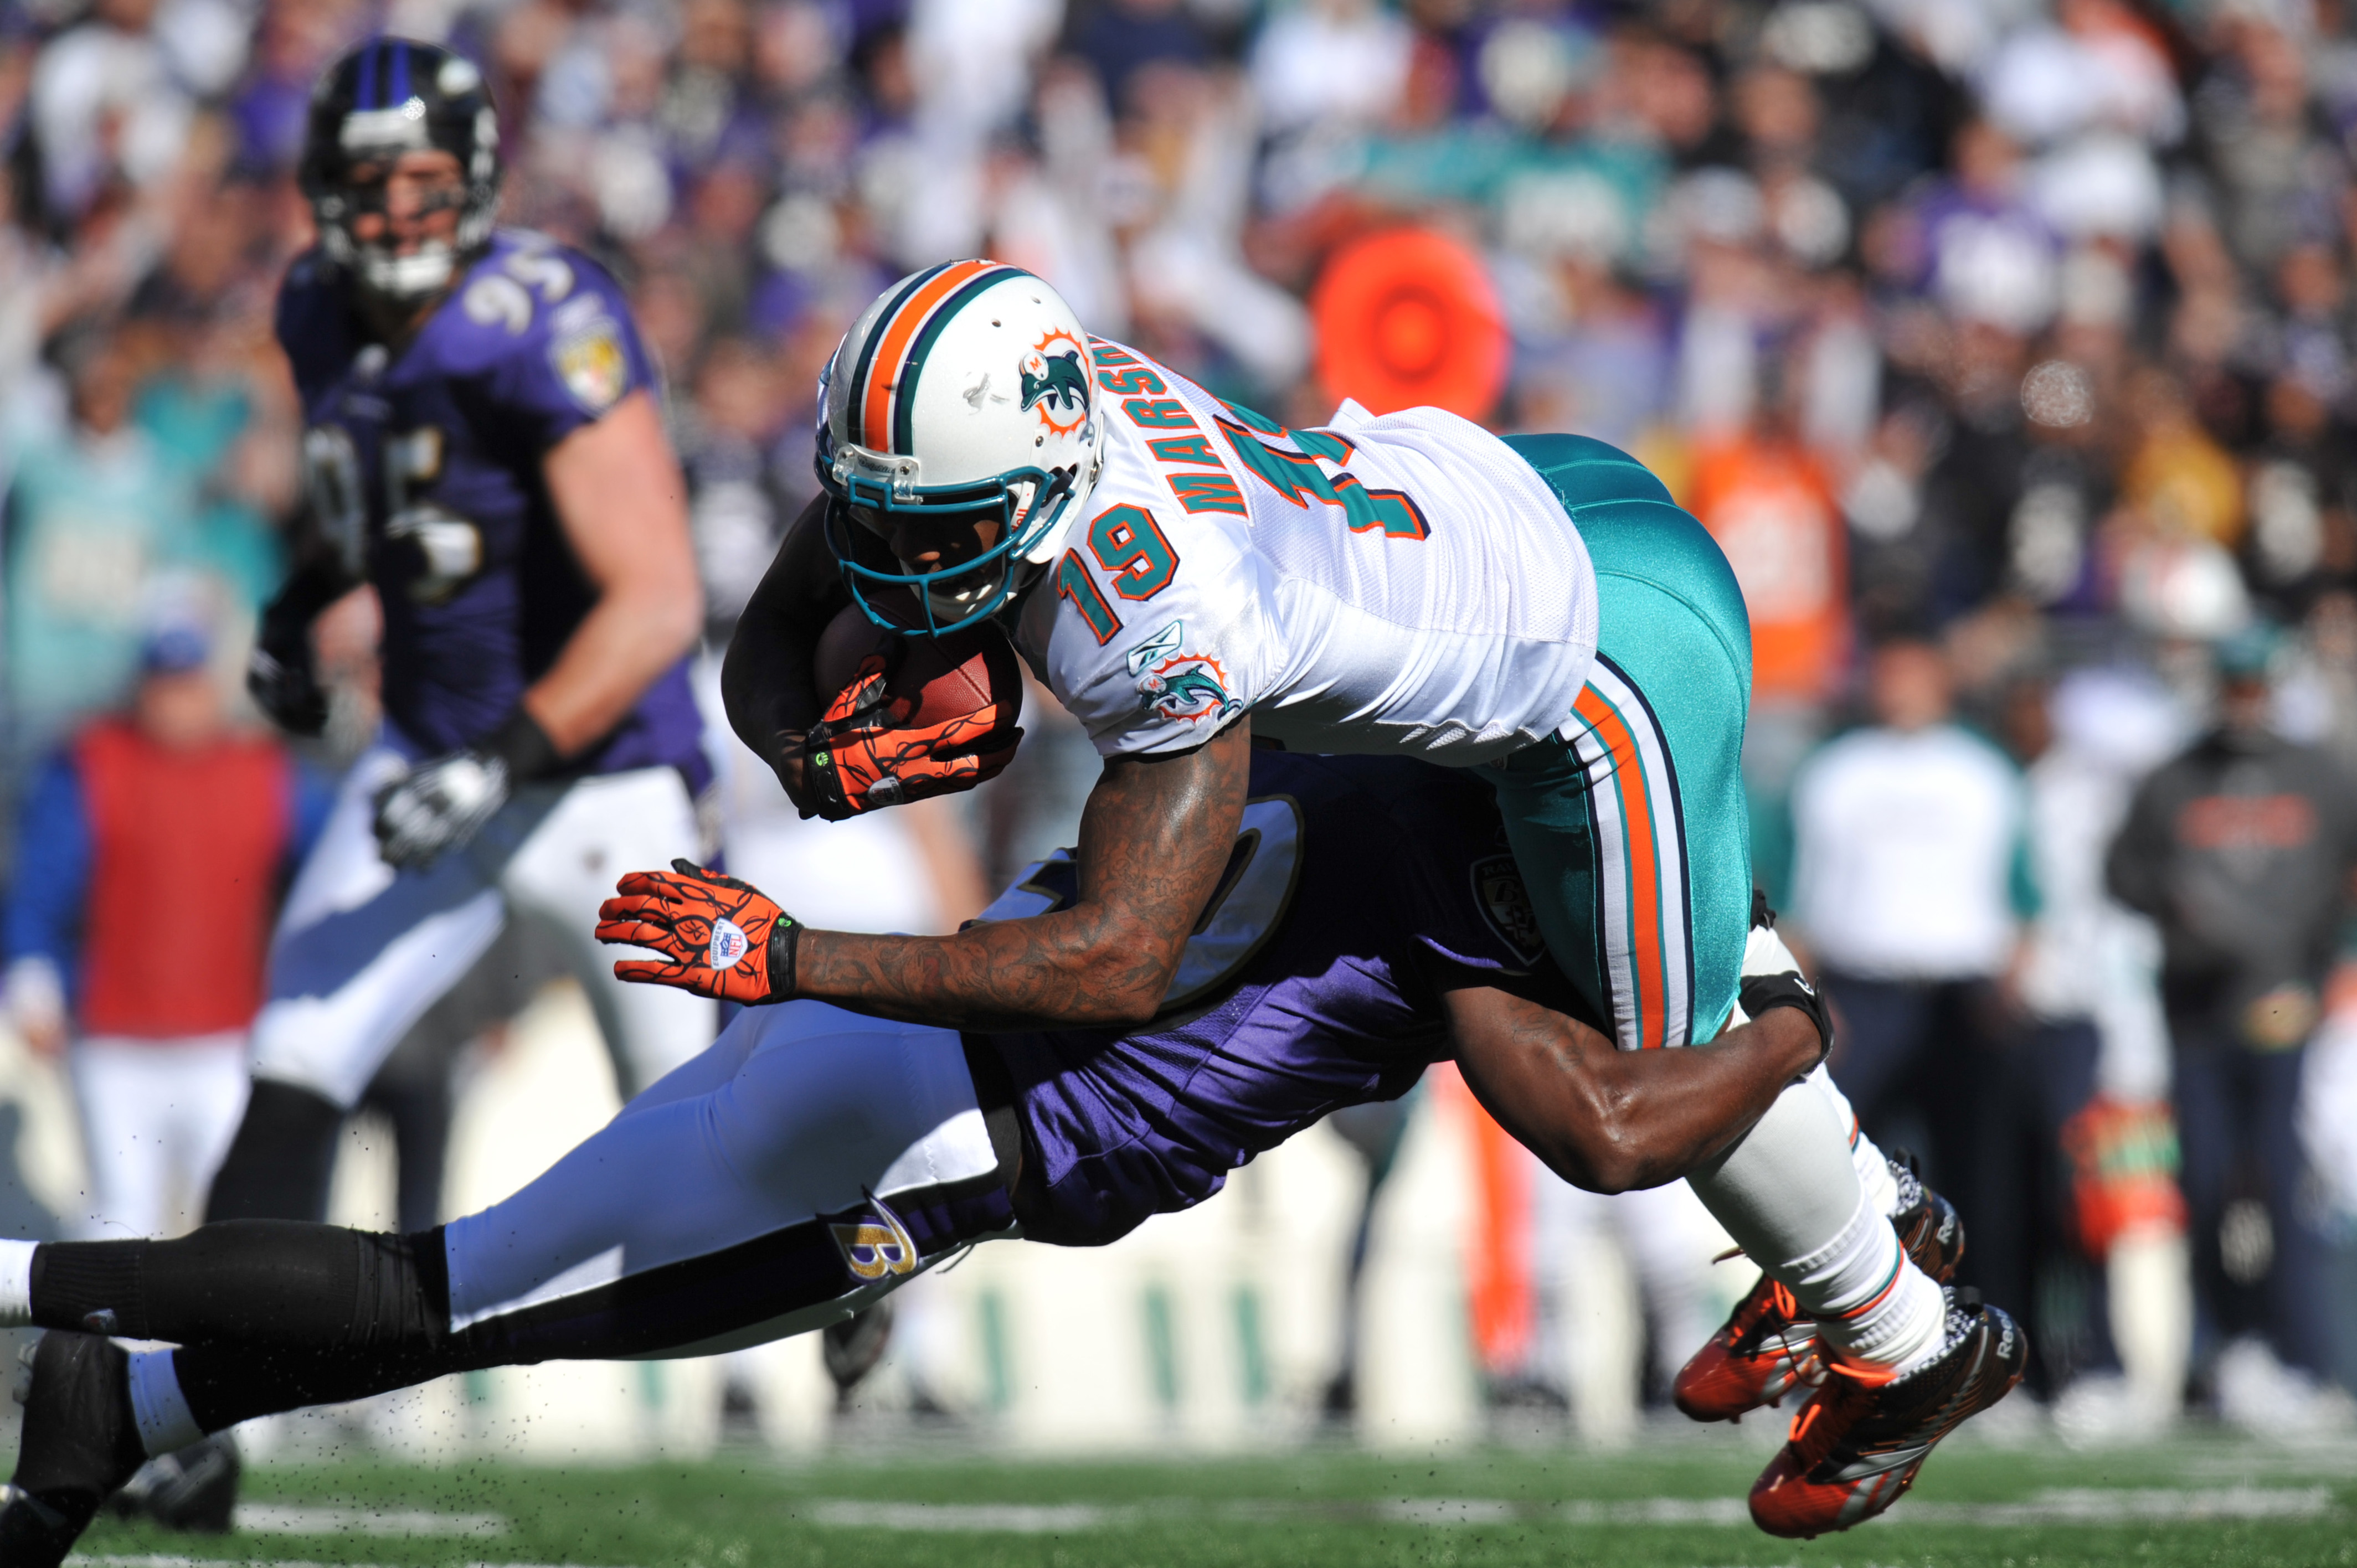 BALTIMORE, MD - NOVEMBER 7:  Brandon Marshall #19 of the Miami Dolphins runs the ball against the Baltimore Ravens at M&T Bank Stadium on November 7, 2010 in Baltimore, Maryland. The Ravens defeated the Dolphins 26-10. (Photo by Larry French/Getty Images)